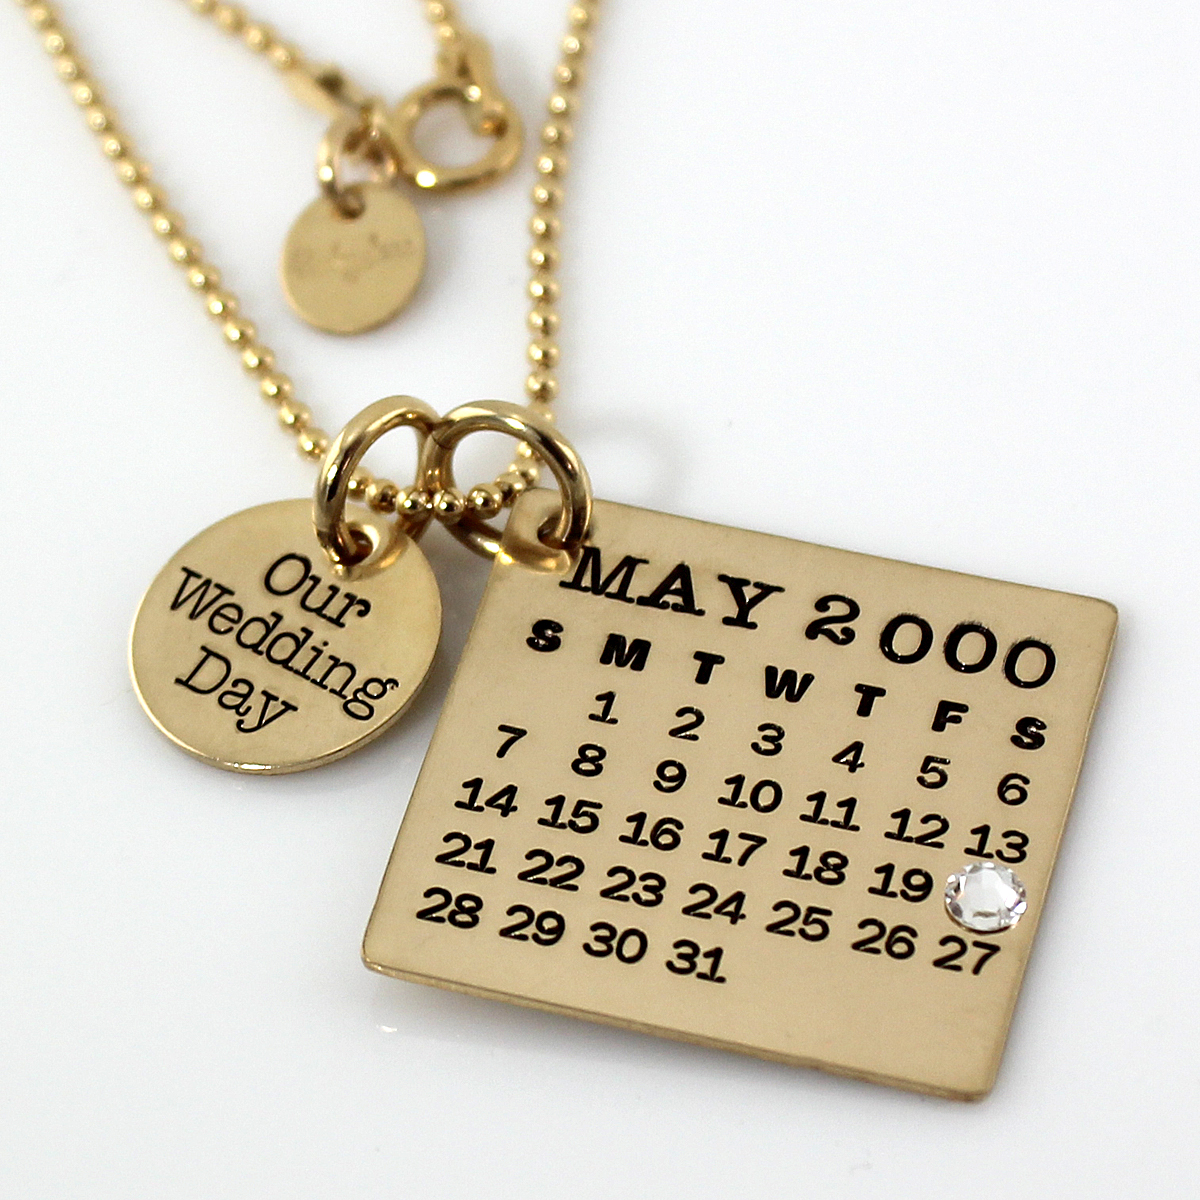 Mark Your Calendar Necklace with Our Wedding Day Charm - Gold Filled